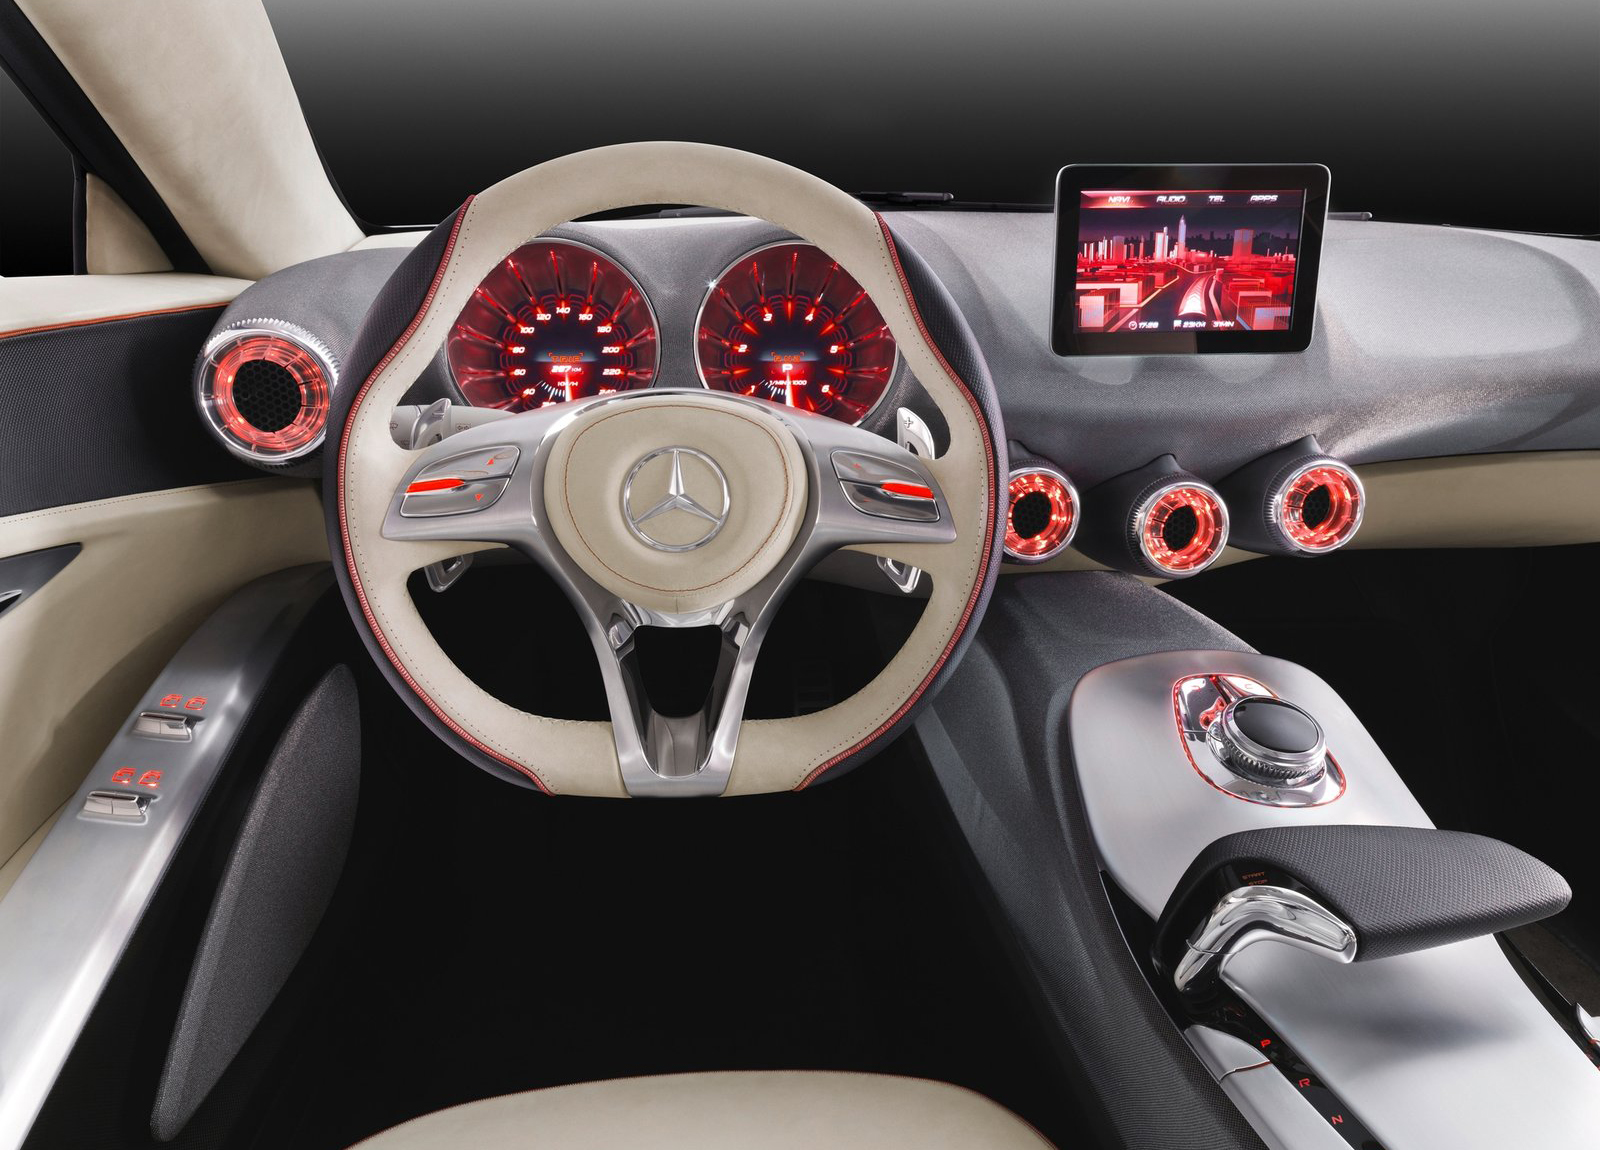 16-Mercedes-Benz-A-Class-Concept-Dashboard